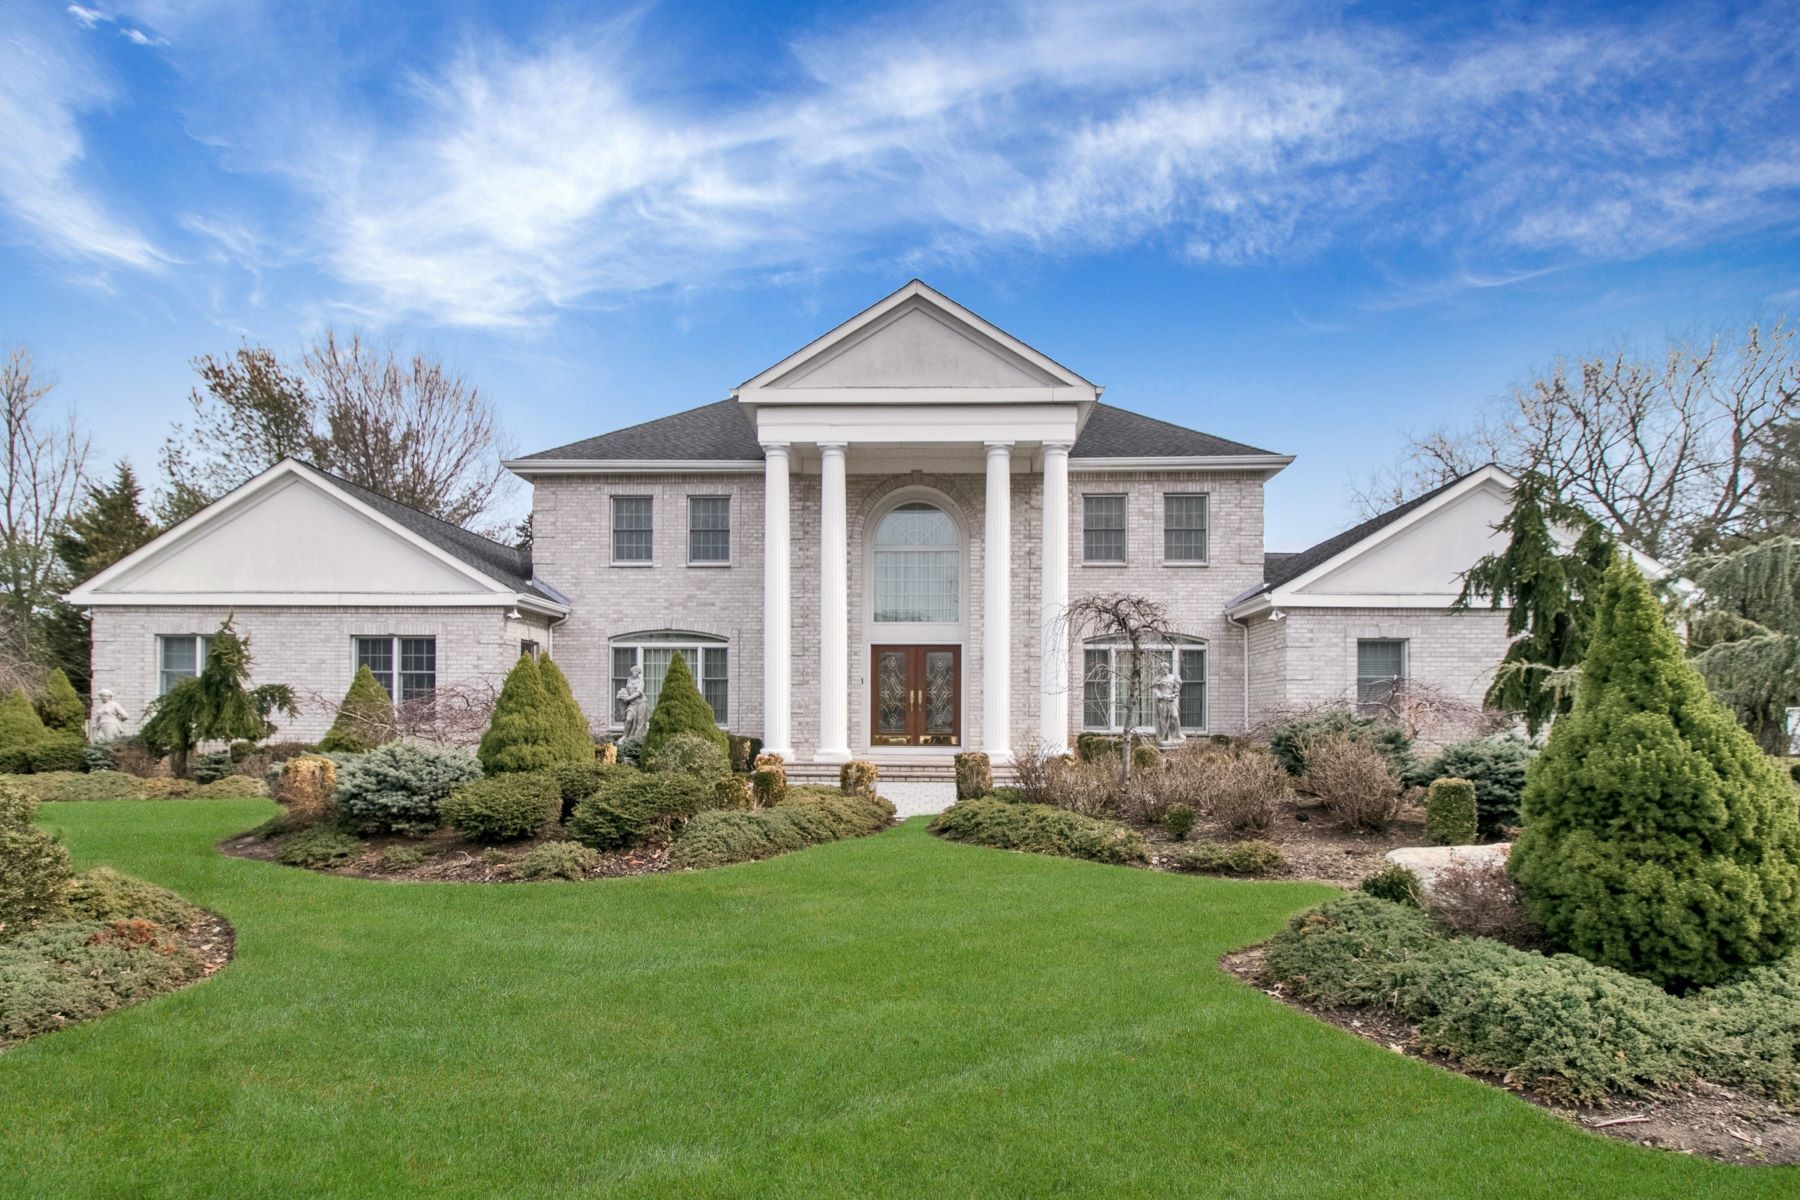 Single Family Home for Sale at Custom Built Colonial 2 Amelia Ct, Harrington Park, New Jersey 07640 United States